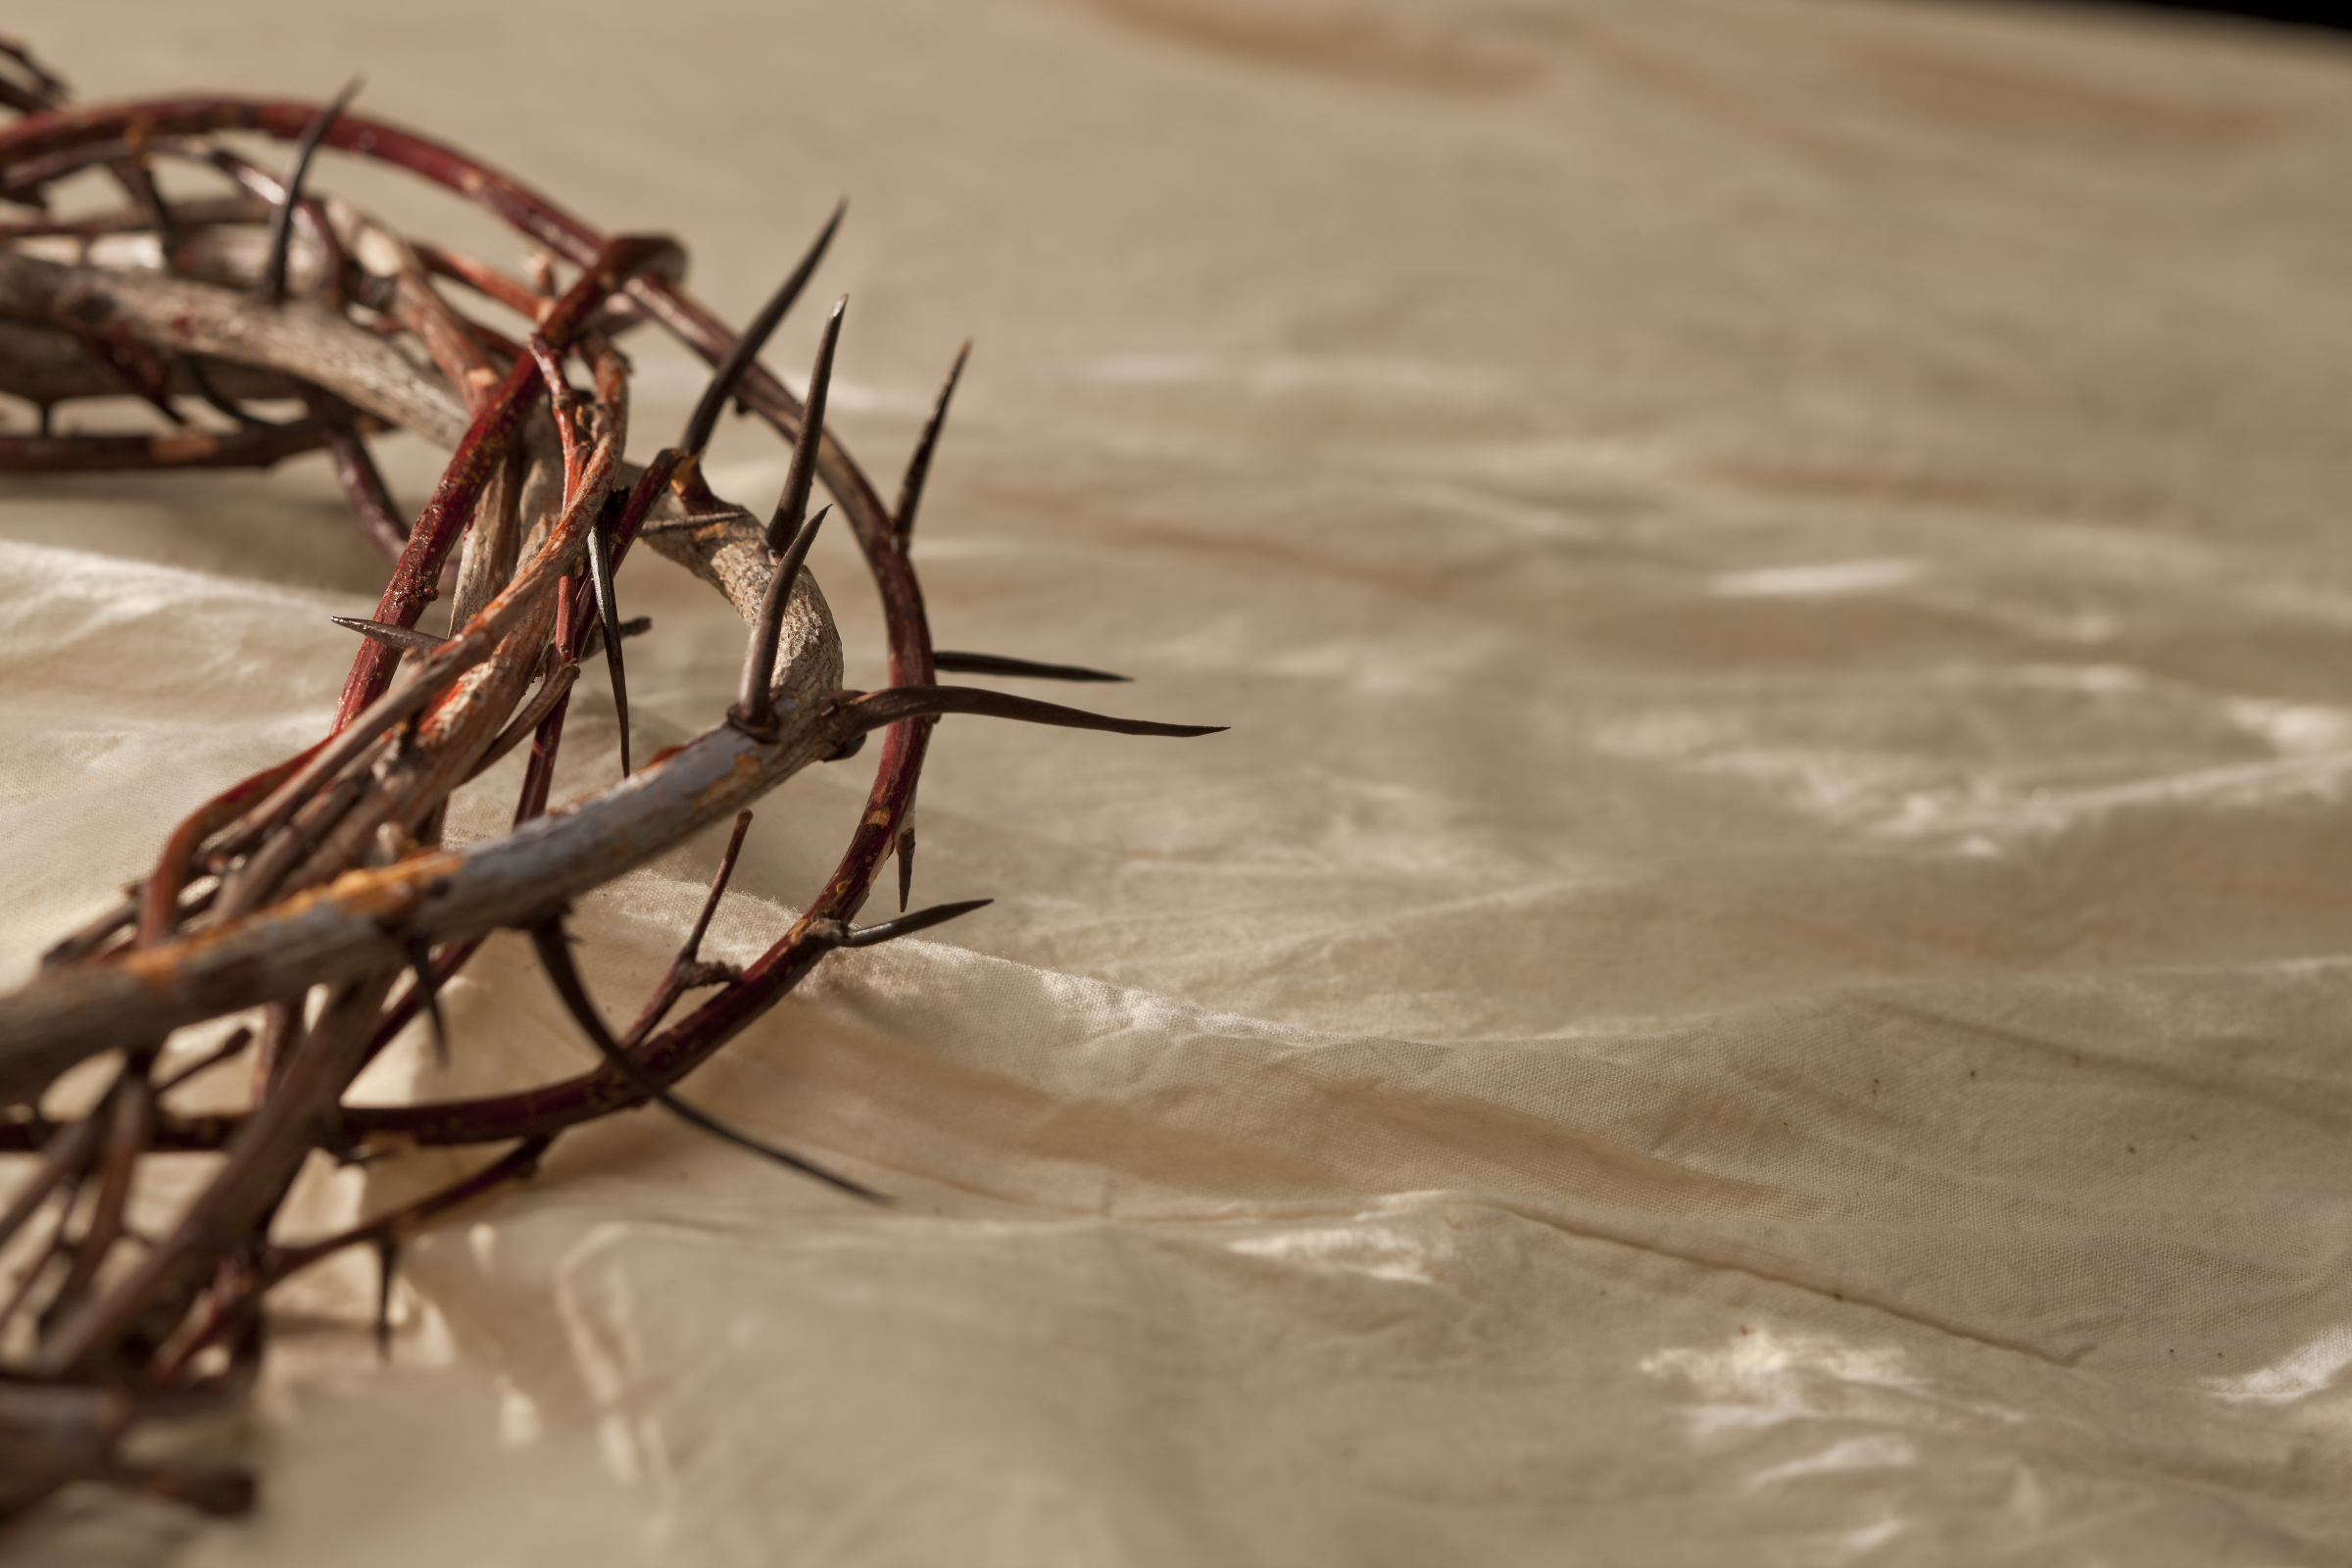 Husband And Wife Love Quotes Wallpapers Jesus Christ Crown Thorns 827201 Wallpaper Astart 233 Earthwise